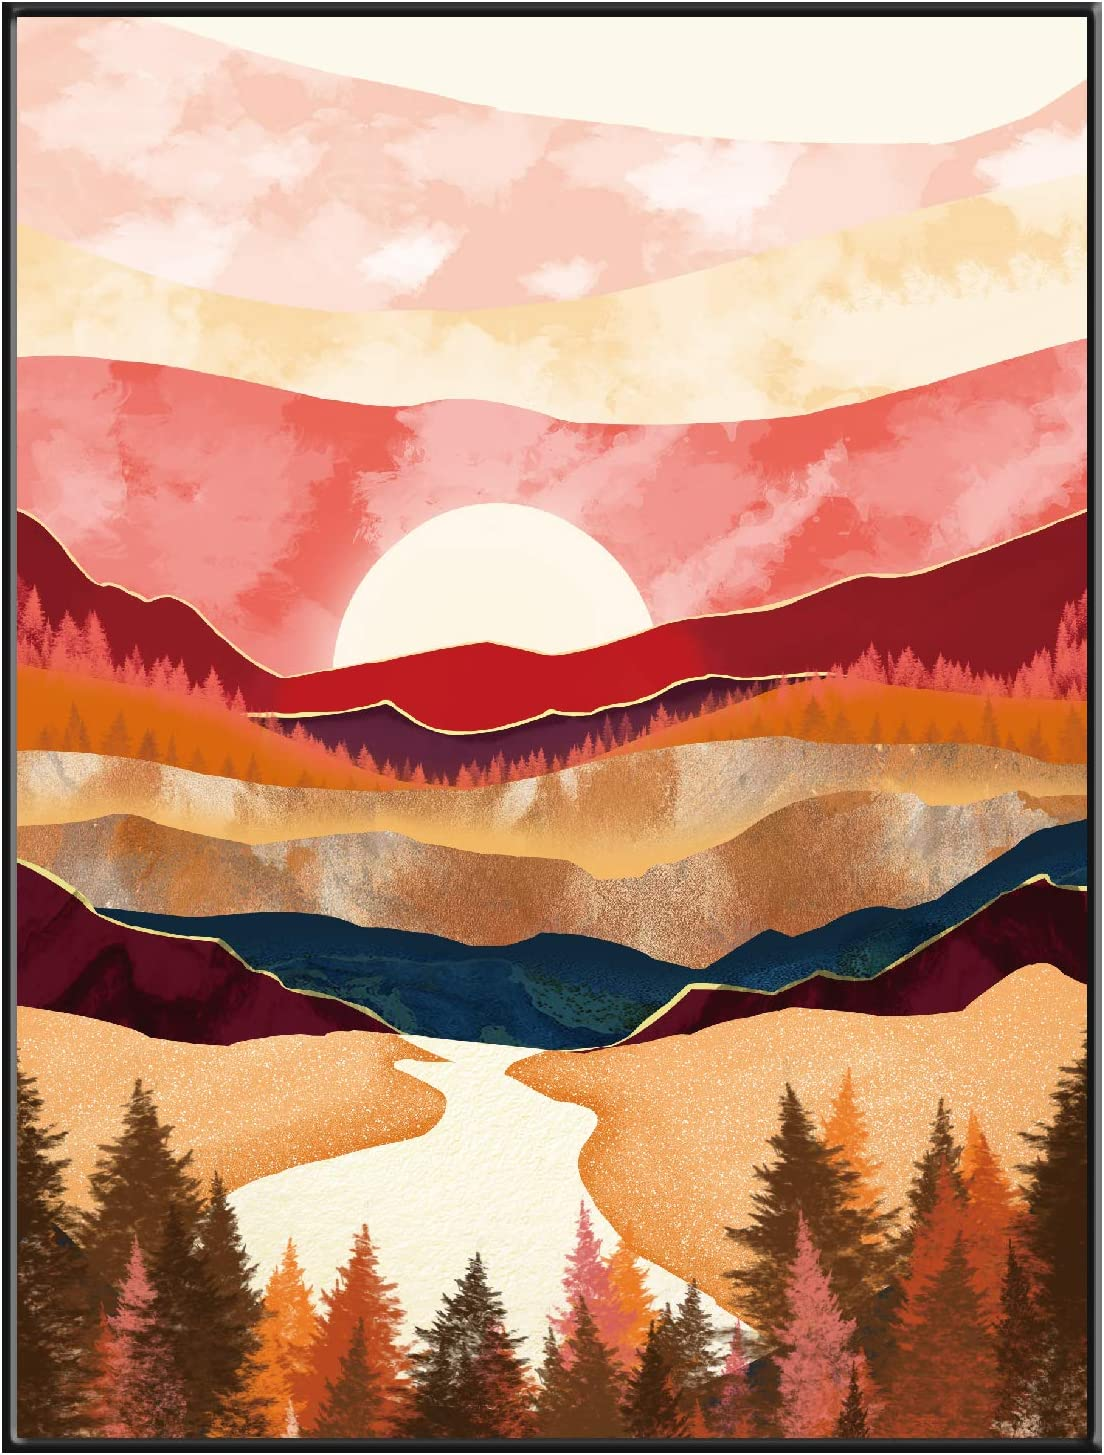 Yumknow Abstract Nature Wall Art - Boho Wall Art for Bedroom Wall Decor for Living Room Pictures for Wall Prints, Unframed 16x20 inch, Mountain Decor, Sunset Wall Art, Moon Poster,Modern Fall Wall Art